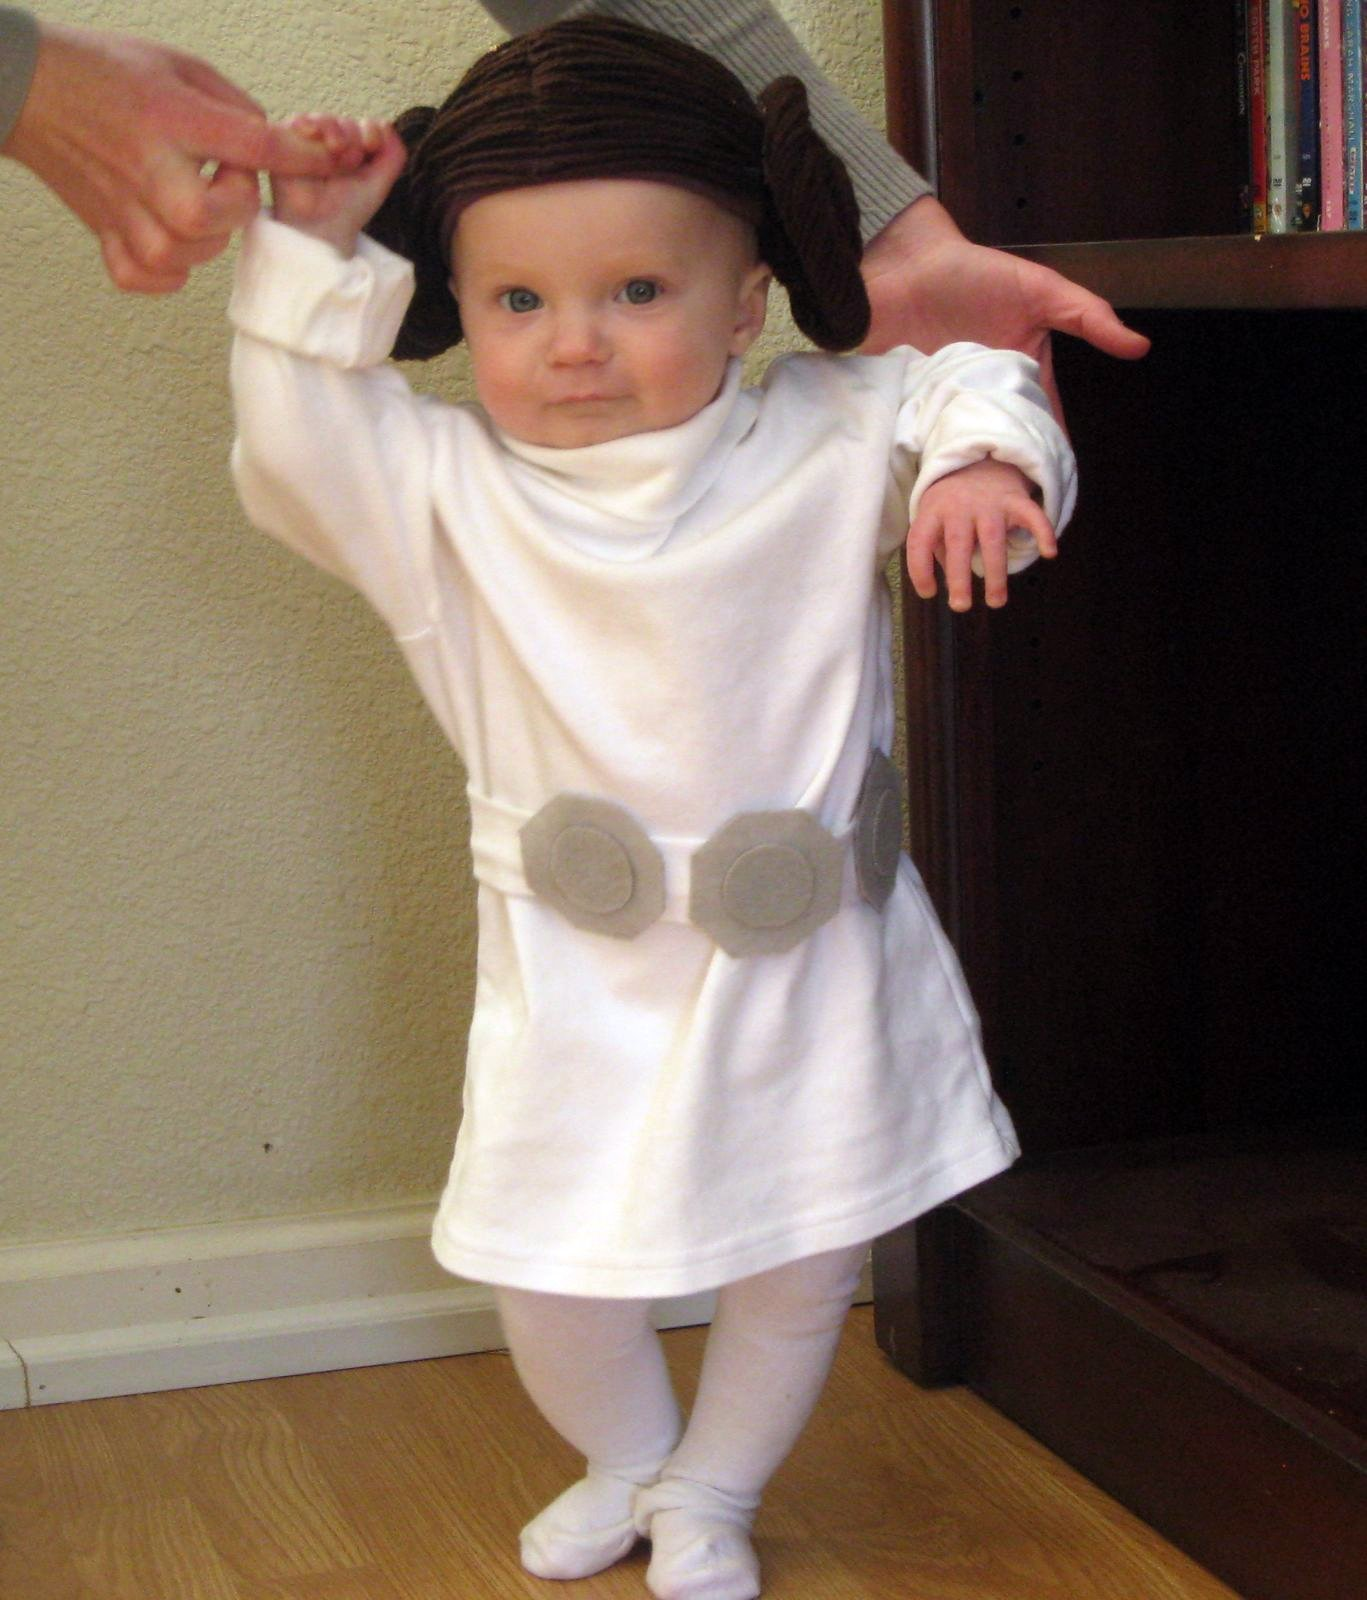 Baby Princess Leia Costume  sc 1 st  The Reno-Sparks Mom & The Reno-Sparks Mom: Baby Princess Leia Costume